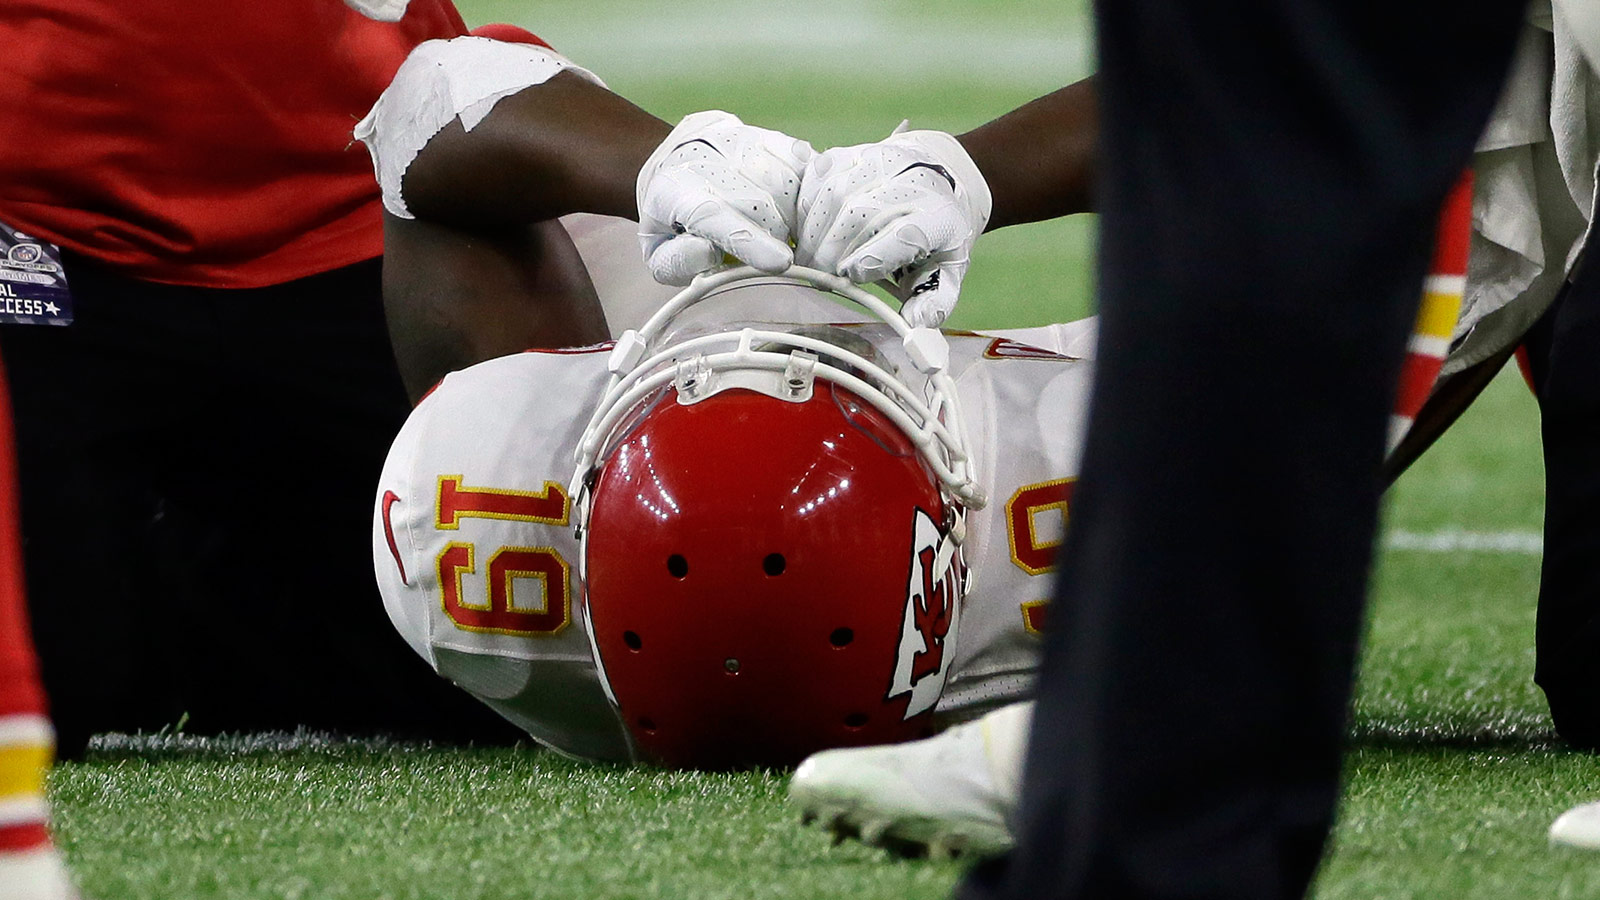 Maclin (ankle) remains in limbo as Chiefs prepare for Patriots